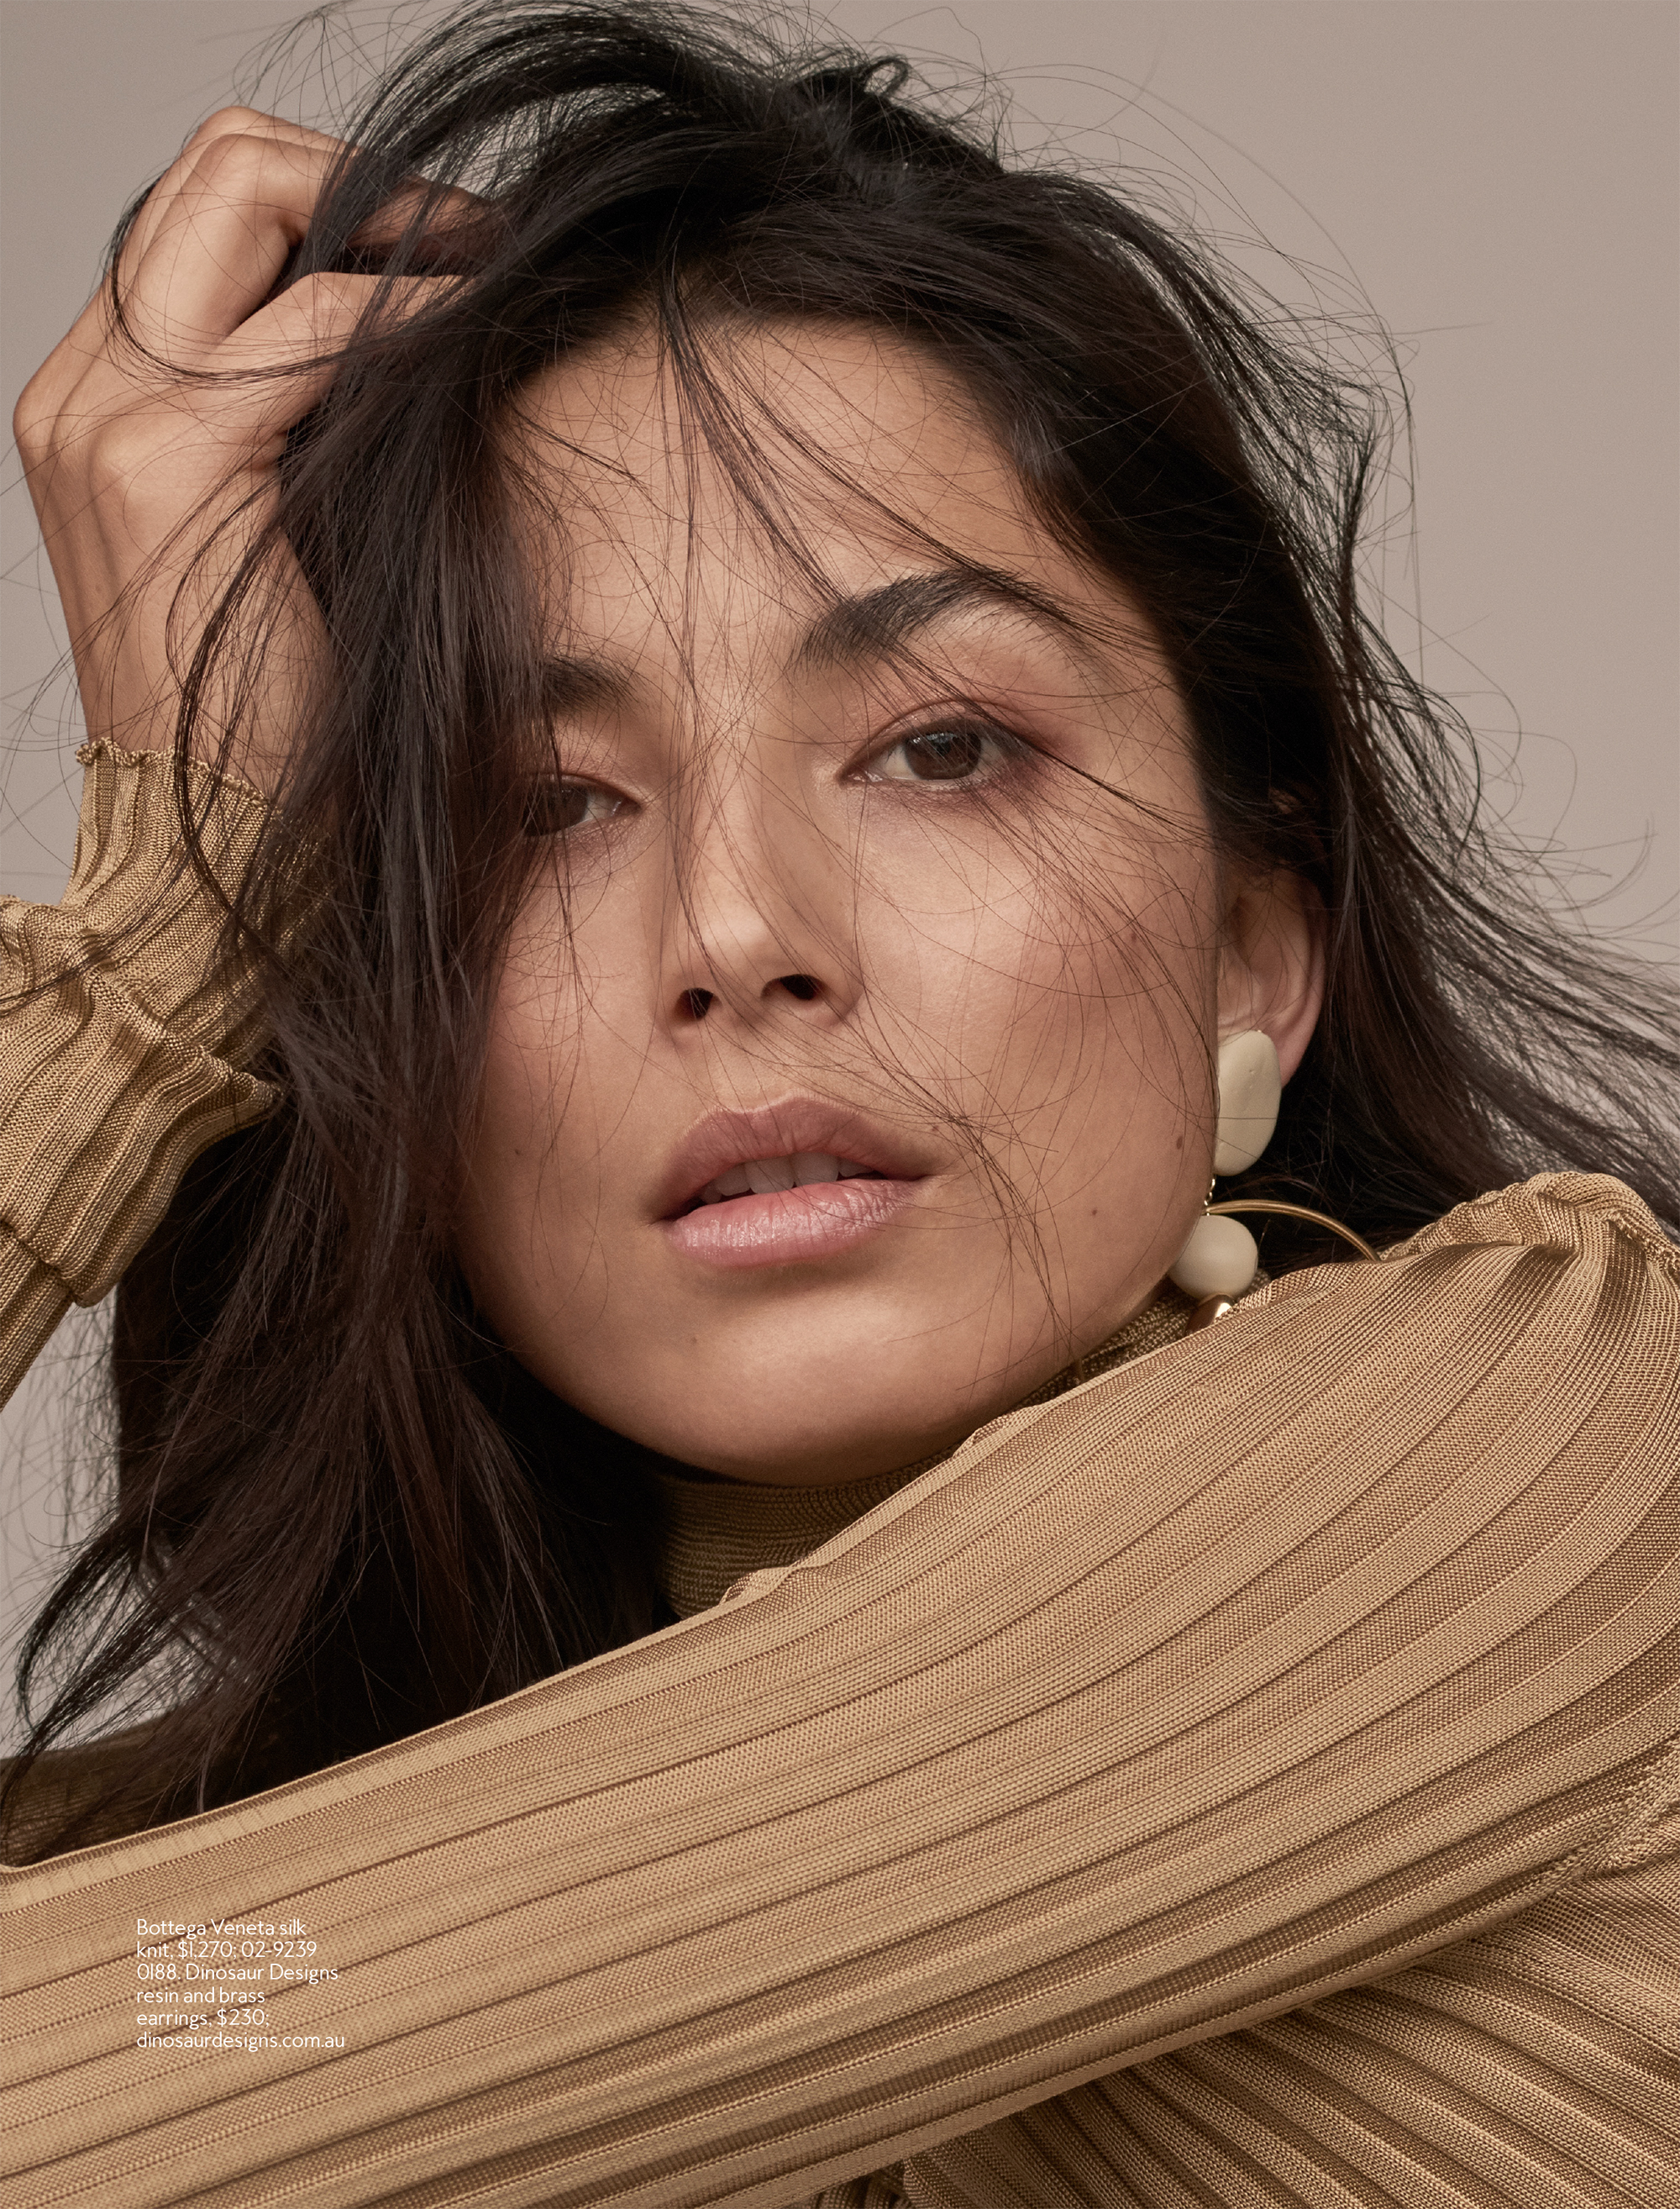 Jessica-Gomes-Instyle-coverstory-2017-4.jpg